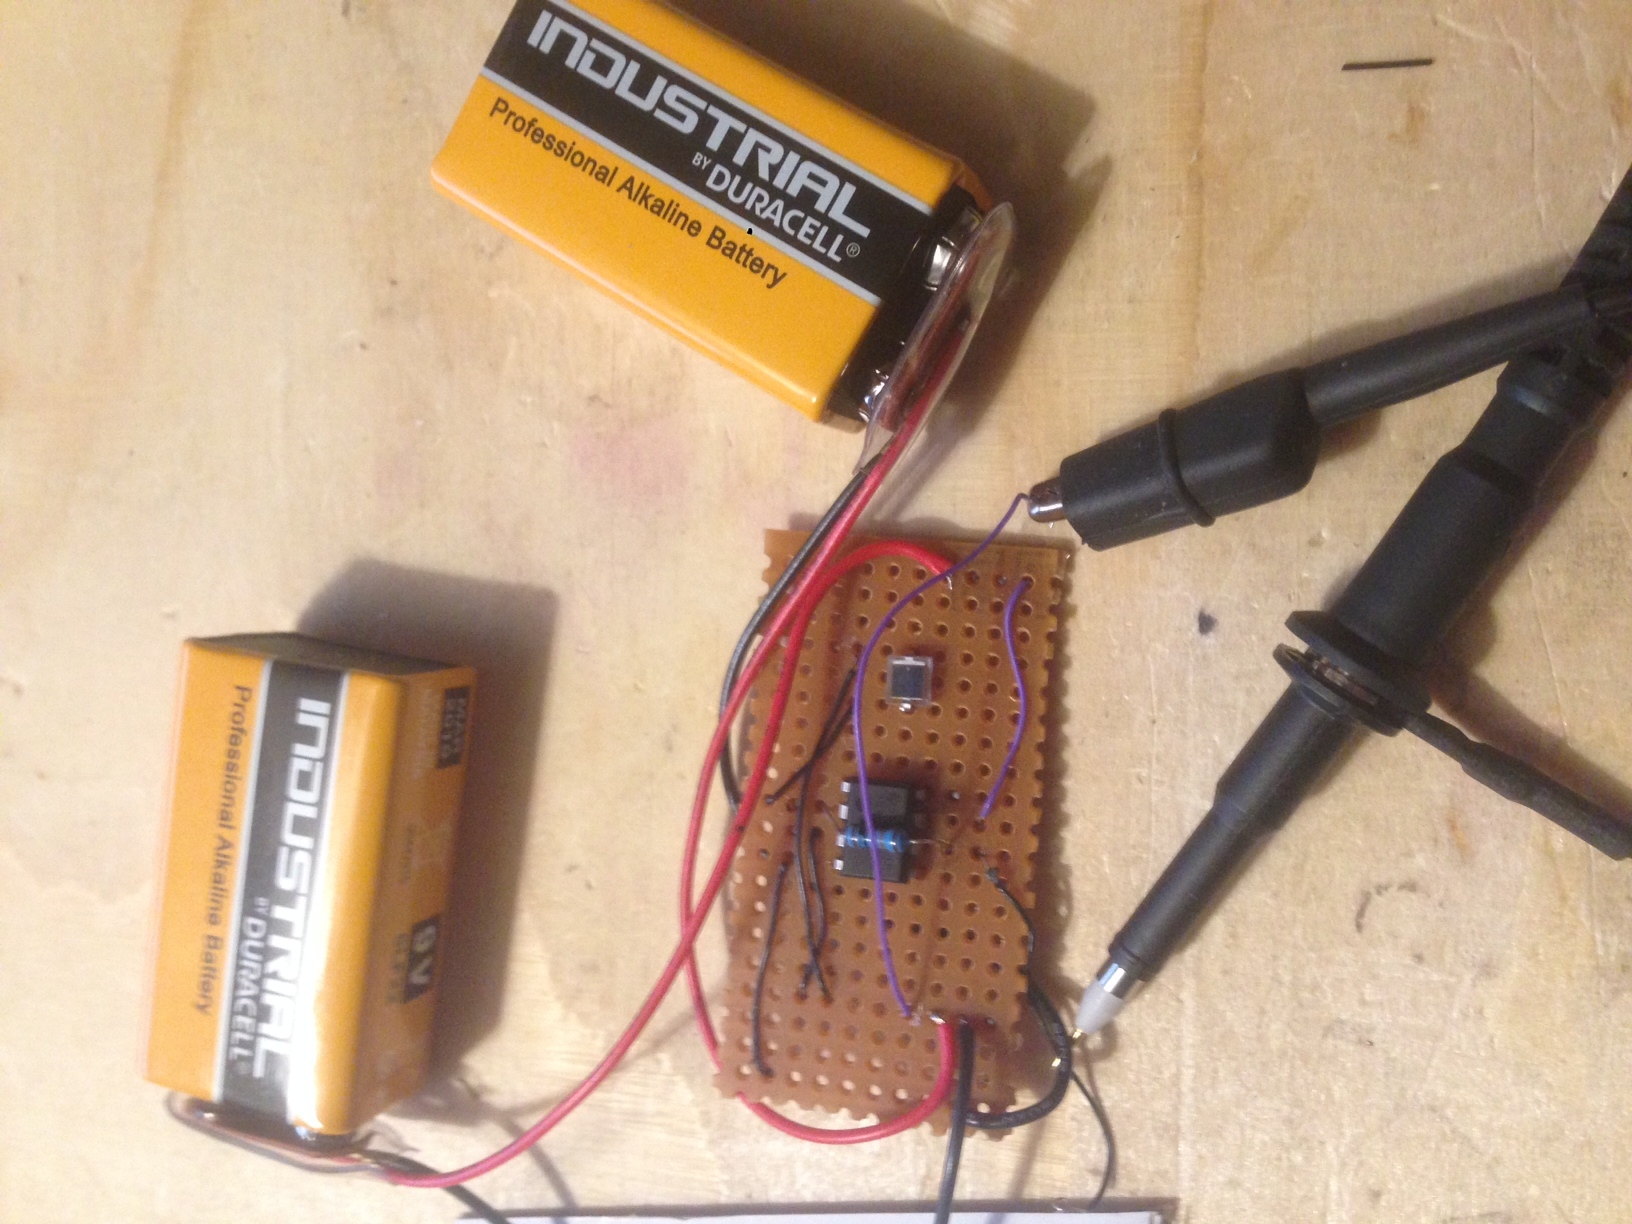 41j Blog Archive Photodiode Amplifiers Transimpedance The Pinout For An Lm741 Is Shown Below Build Them Up I May Not Use 741 But Another Opamp With A Similar Possibly Fet Input Basic Tia Circuit And